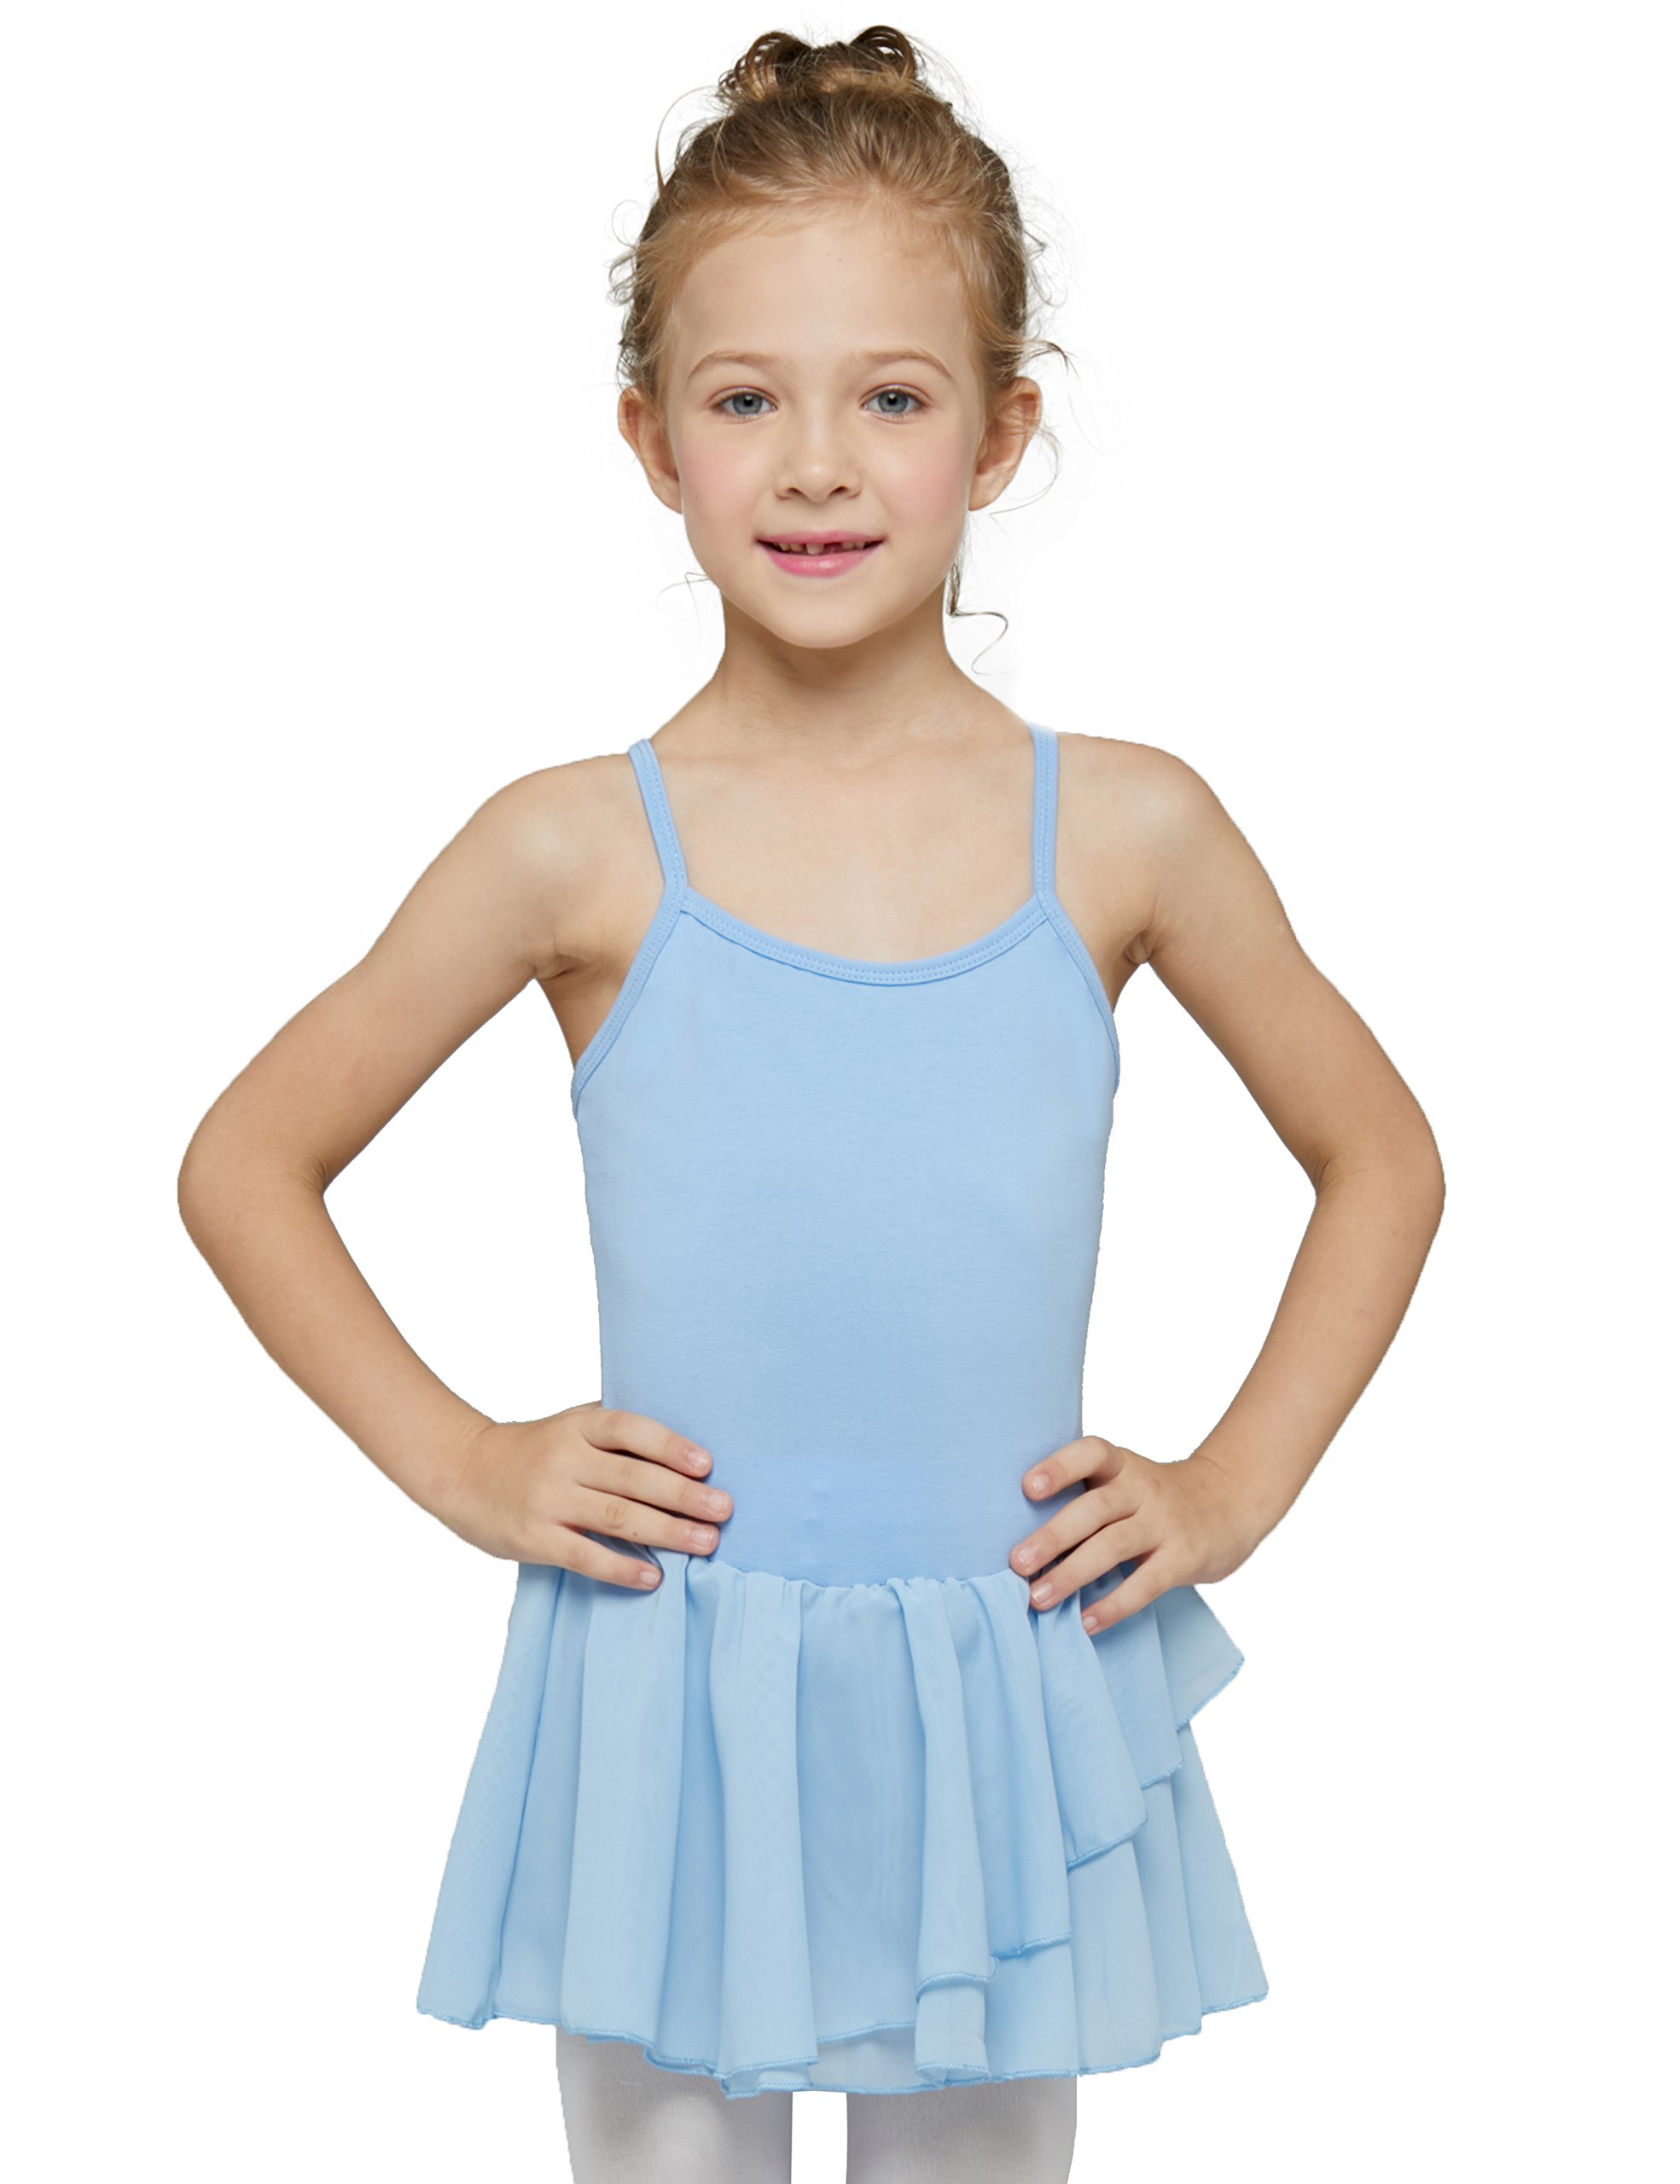 MdnMd Camisole Skirted Leotard for Girls by (Tag 130) Age 6-8, Blue